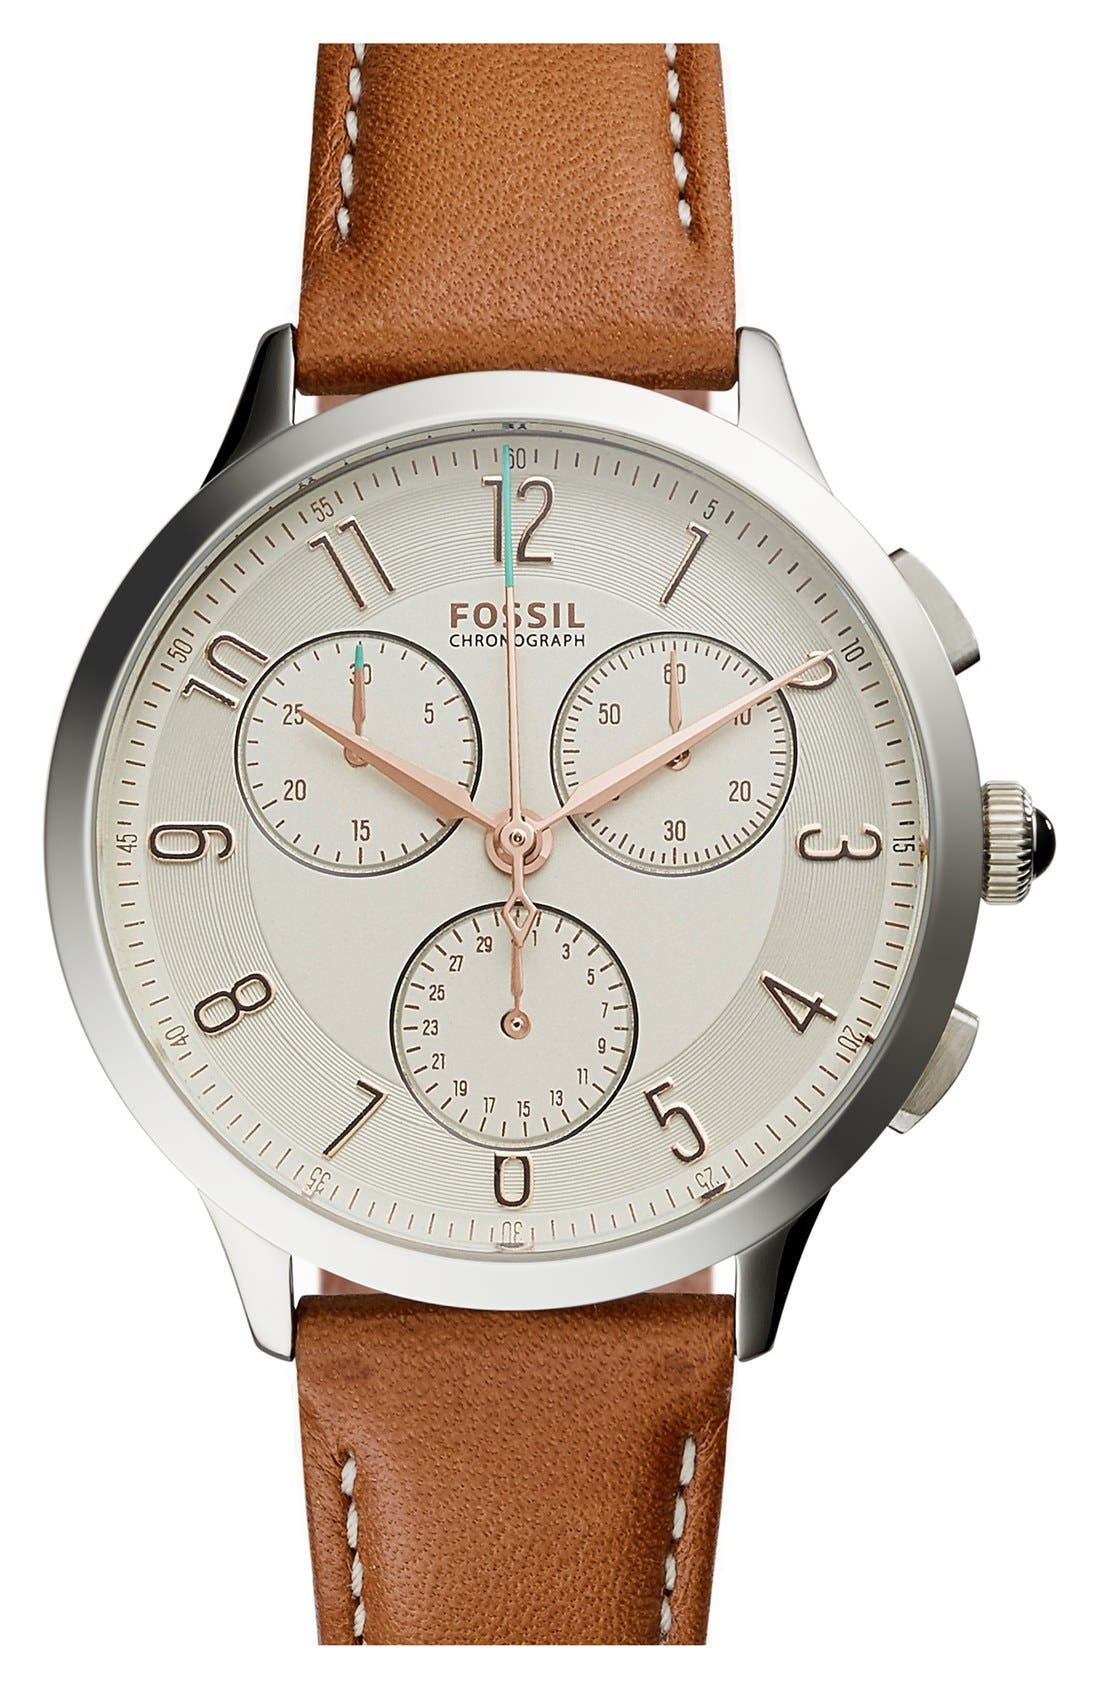 Main Image - Fossil 'Abilene' Chronograph Leather Strap Watch, 34mm